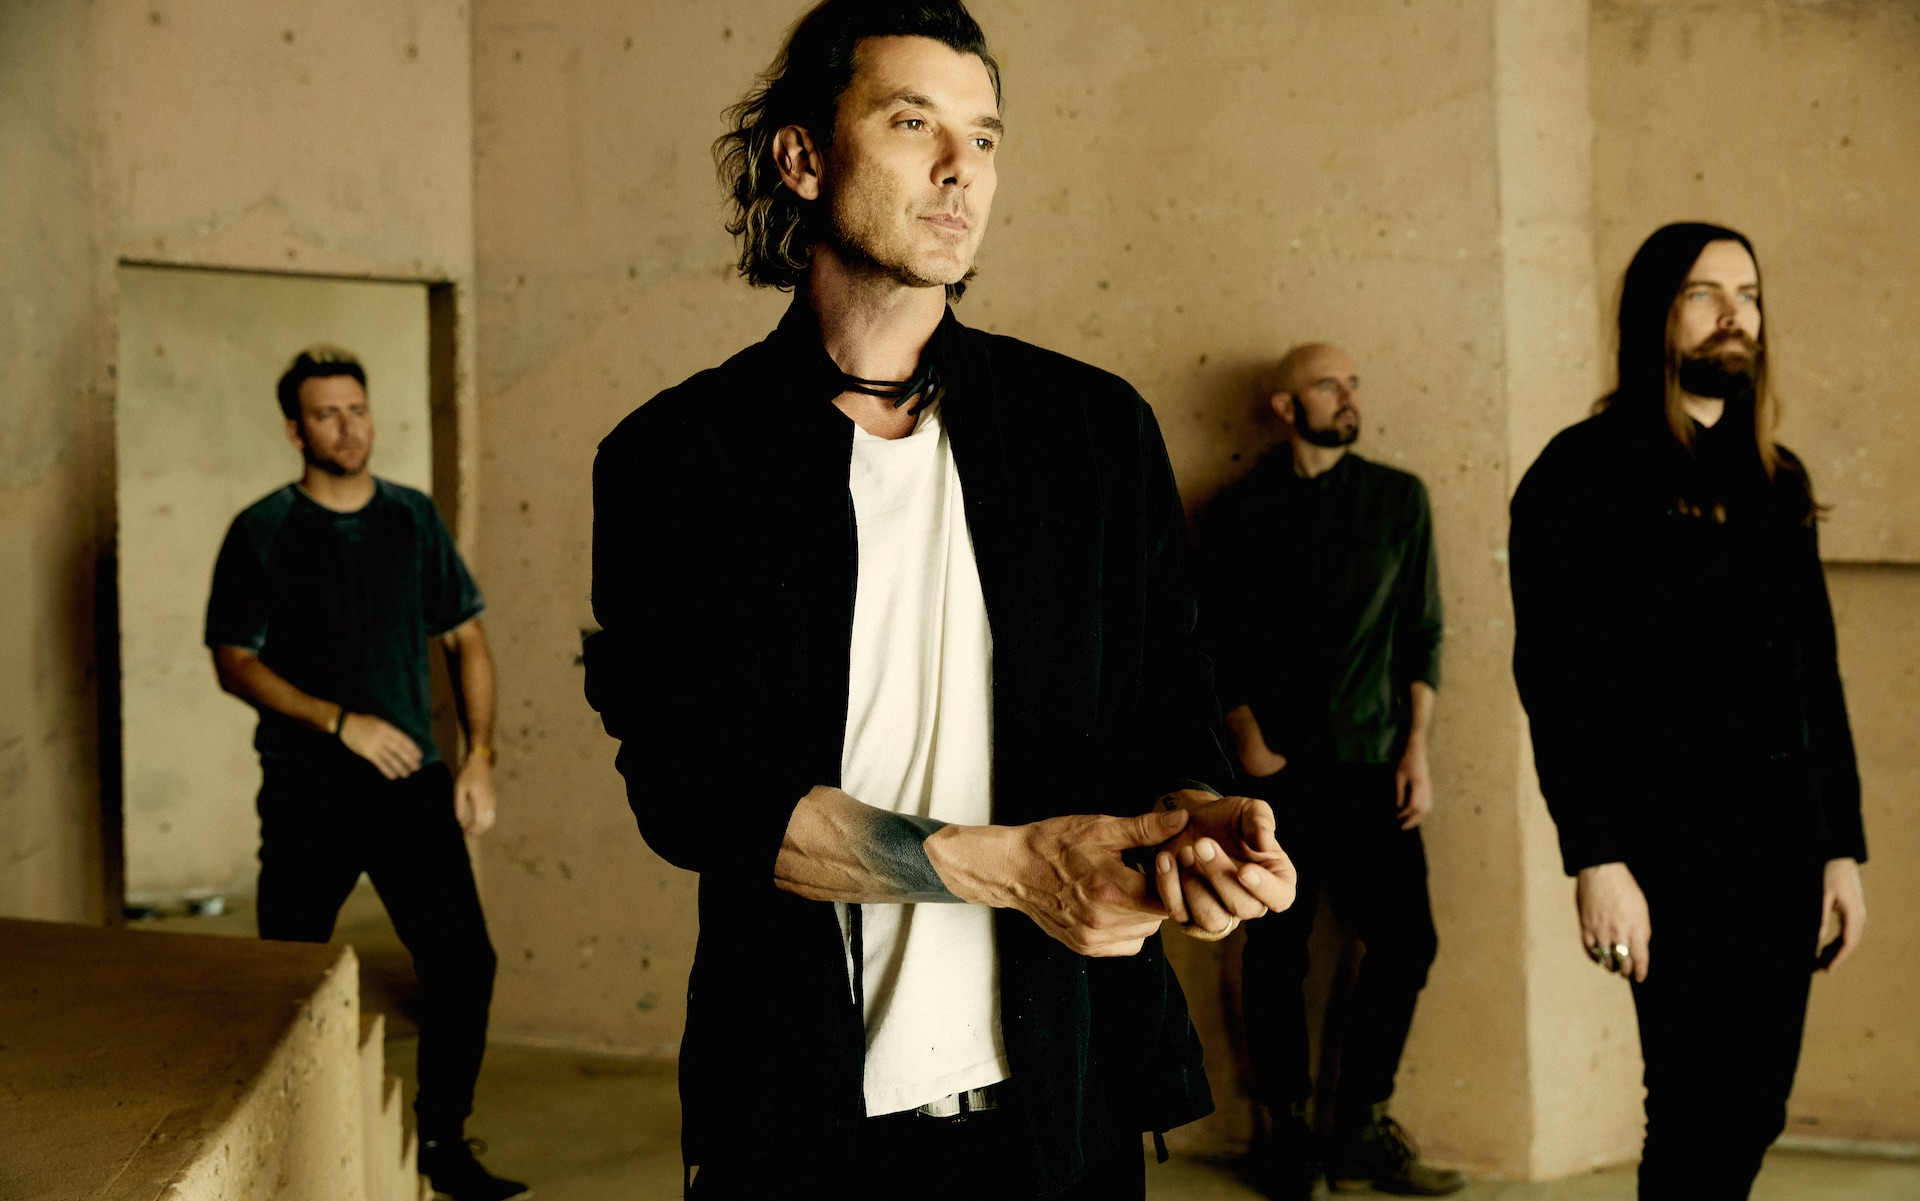 Gavin Rossdale is pictured with other members of the band Bush.